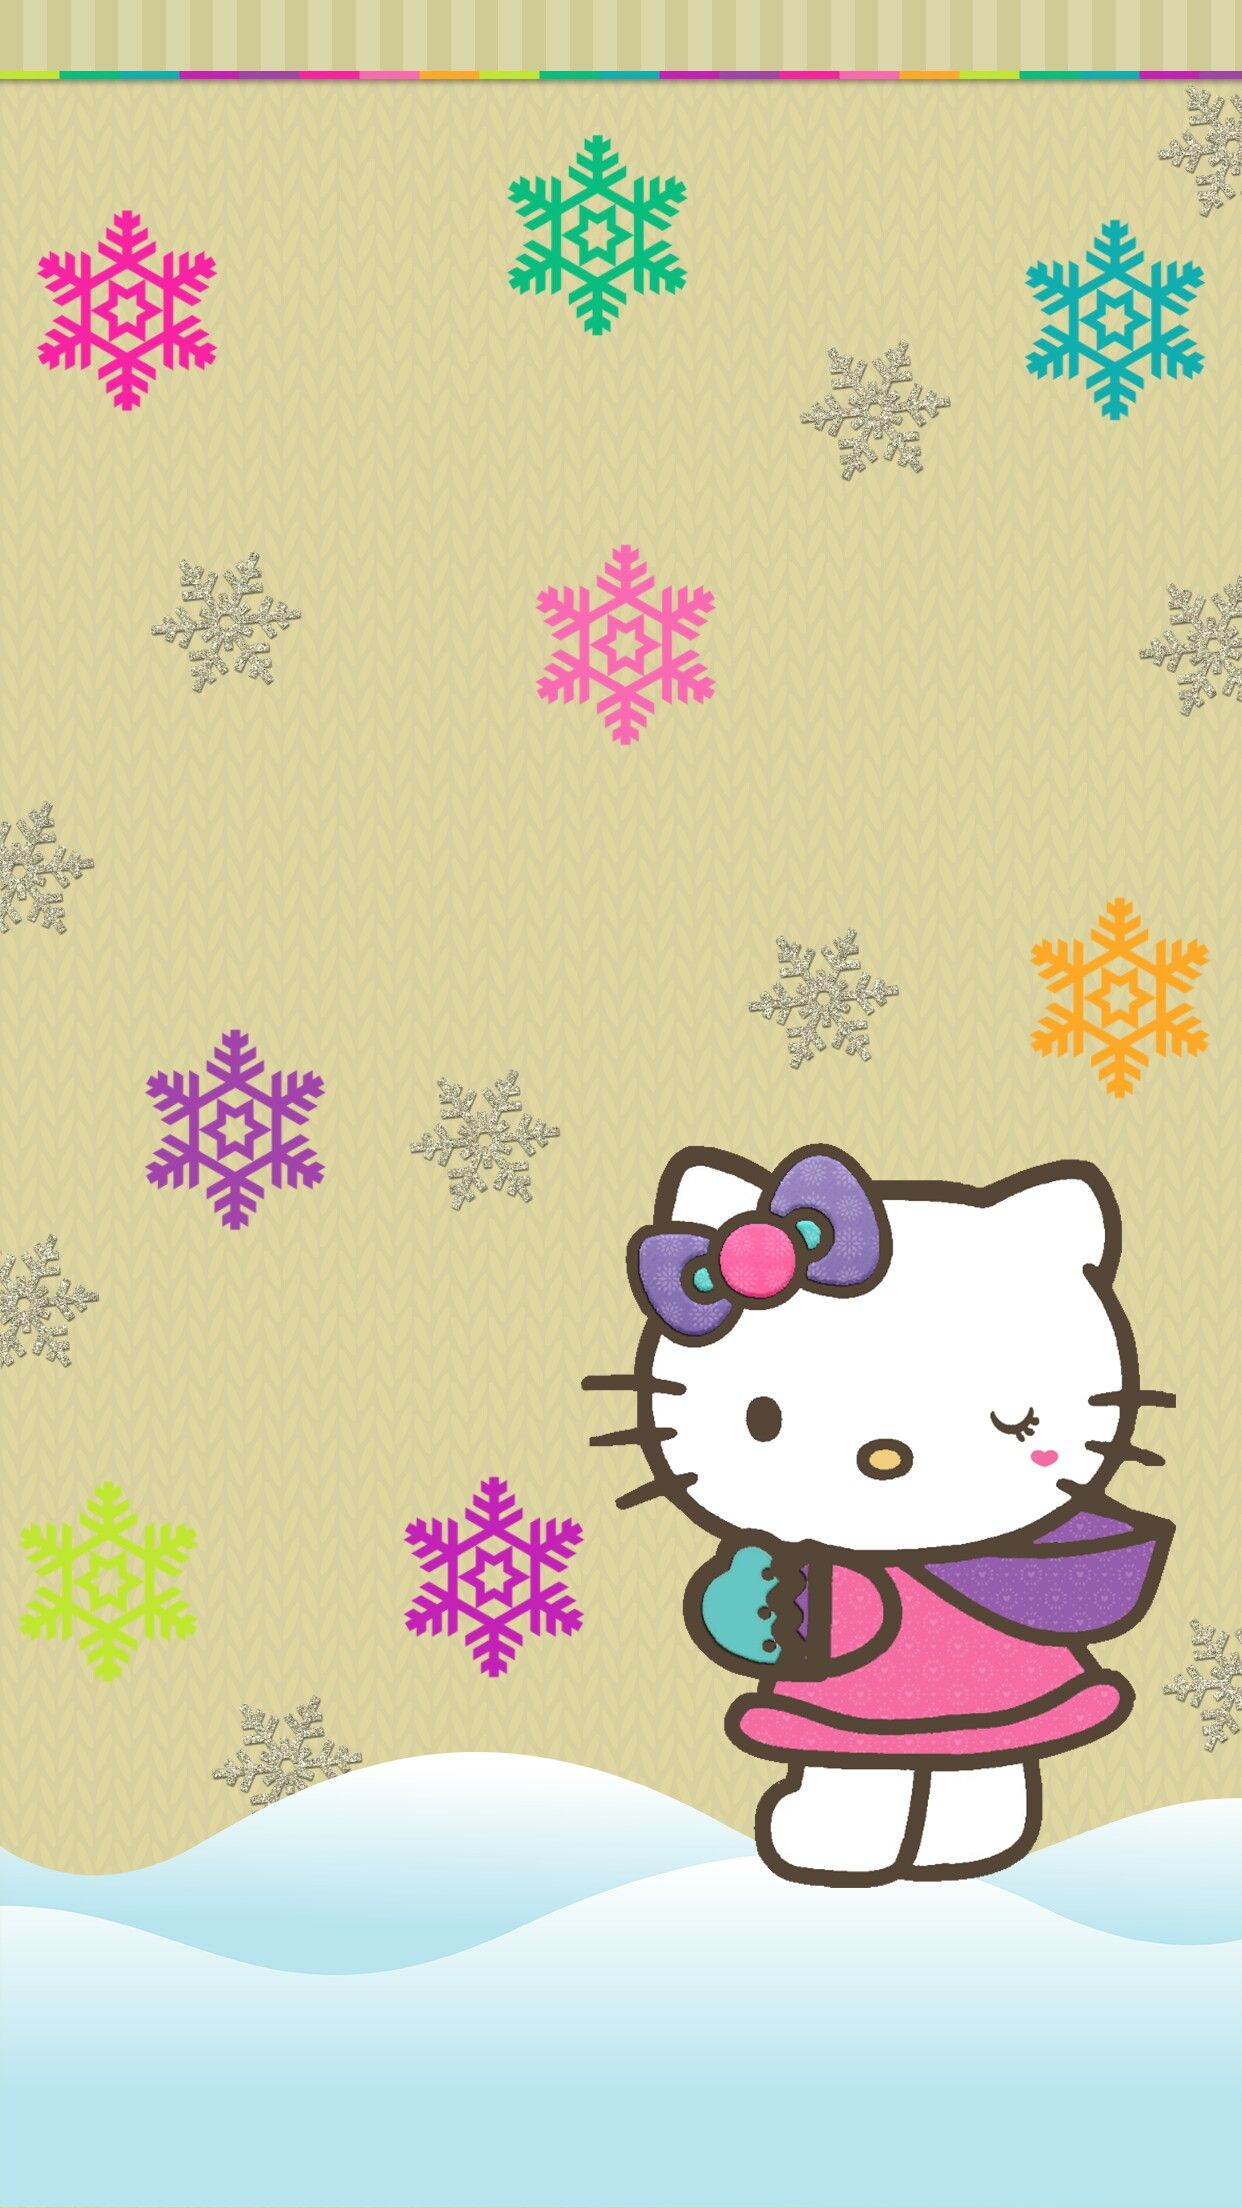 Cool Wallpaper Hello Kitty Iphone 5 - 73a7143cb31aa611e7bfcc9c636a4cfd  You Should Have_759952.jpg